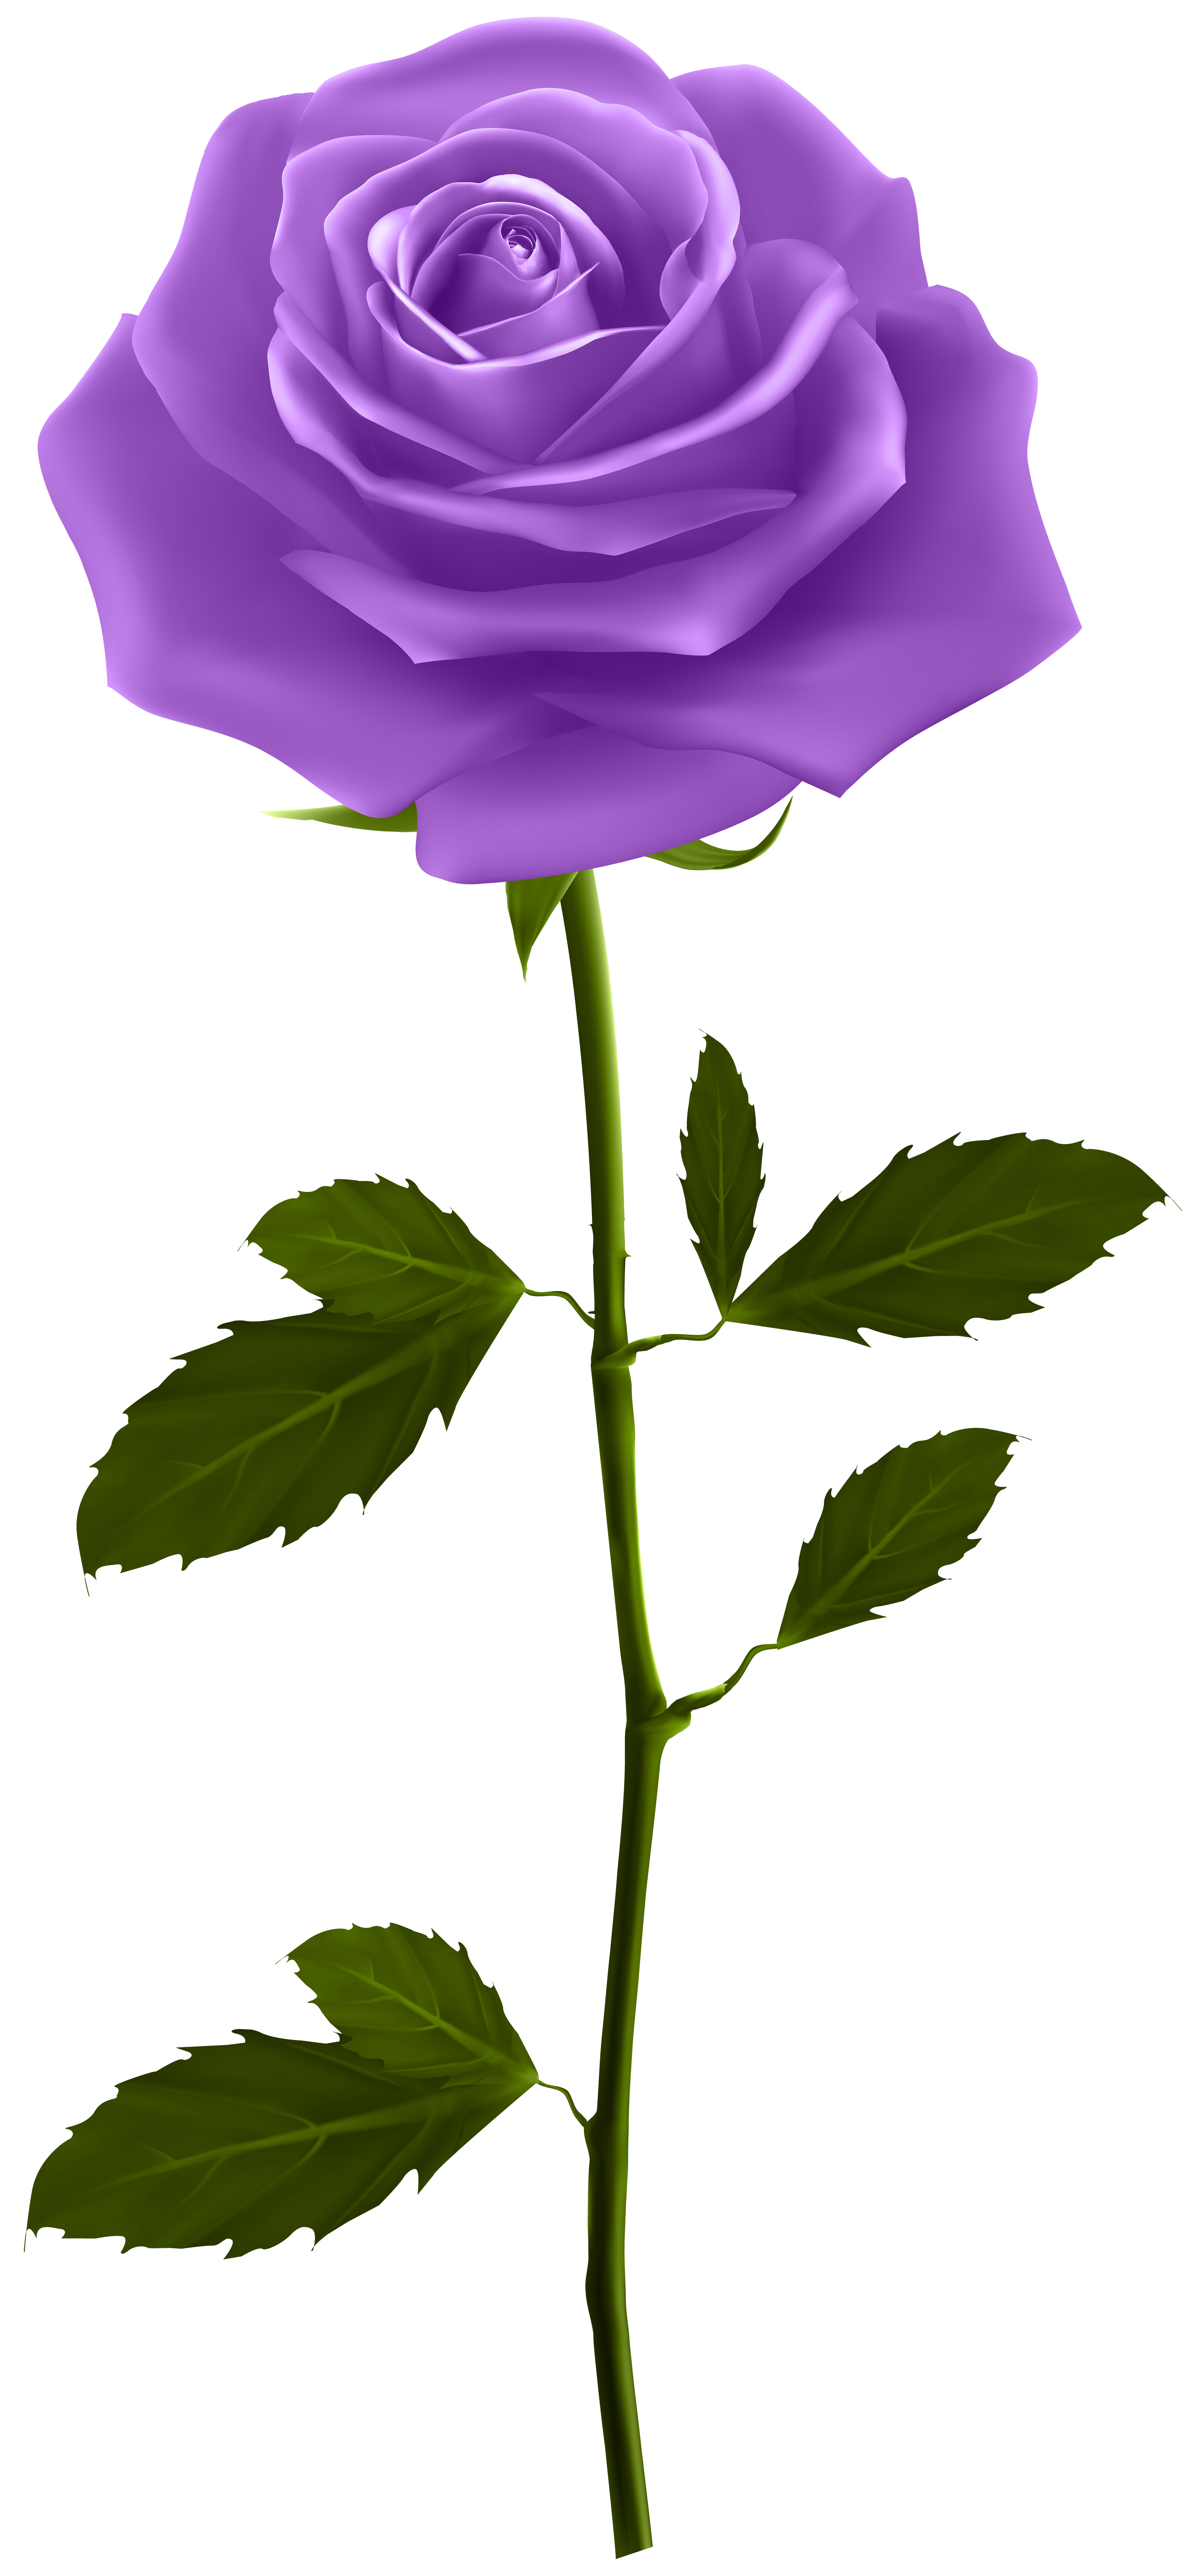 Rose clipart stick. Purple with stem png